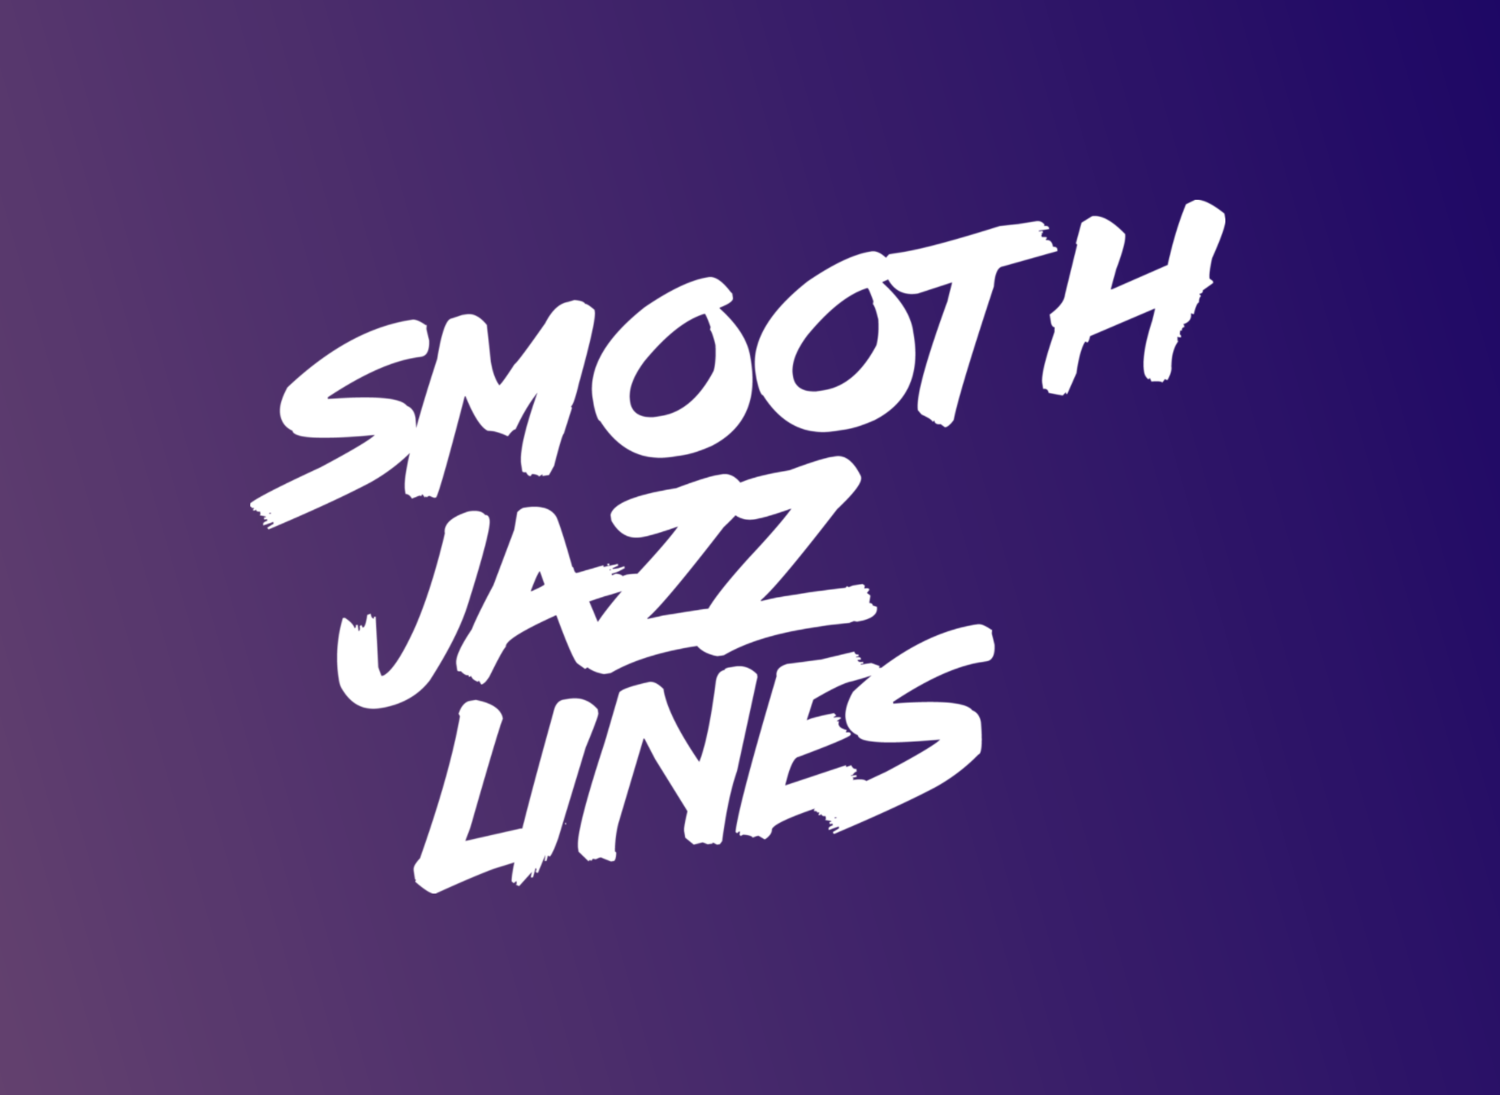 Smooth Jazz Lines